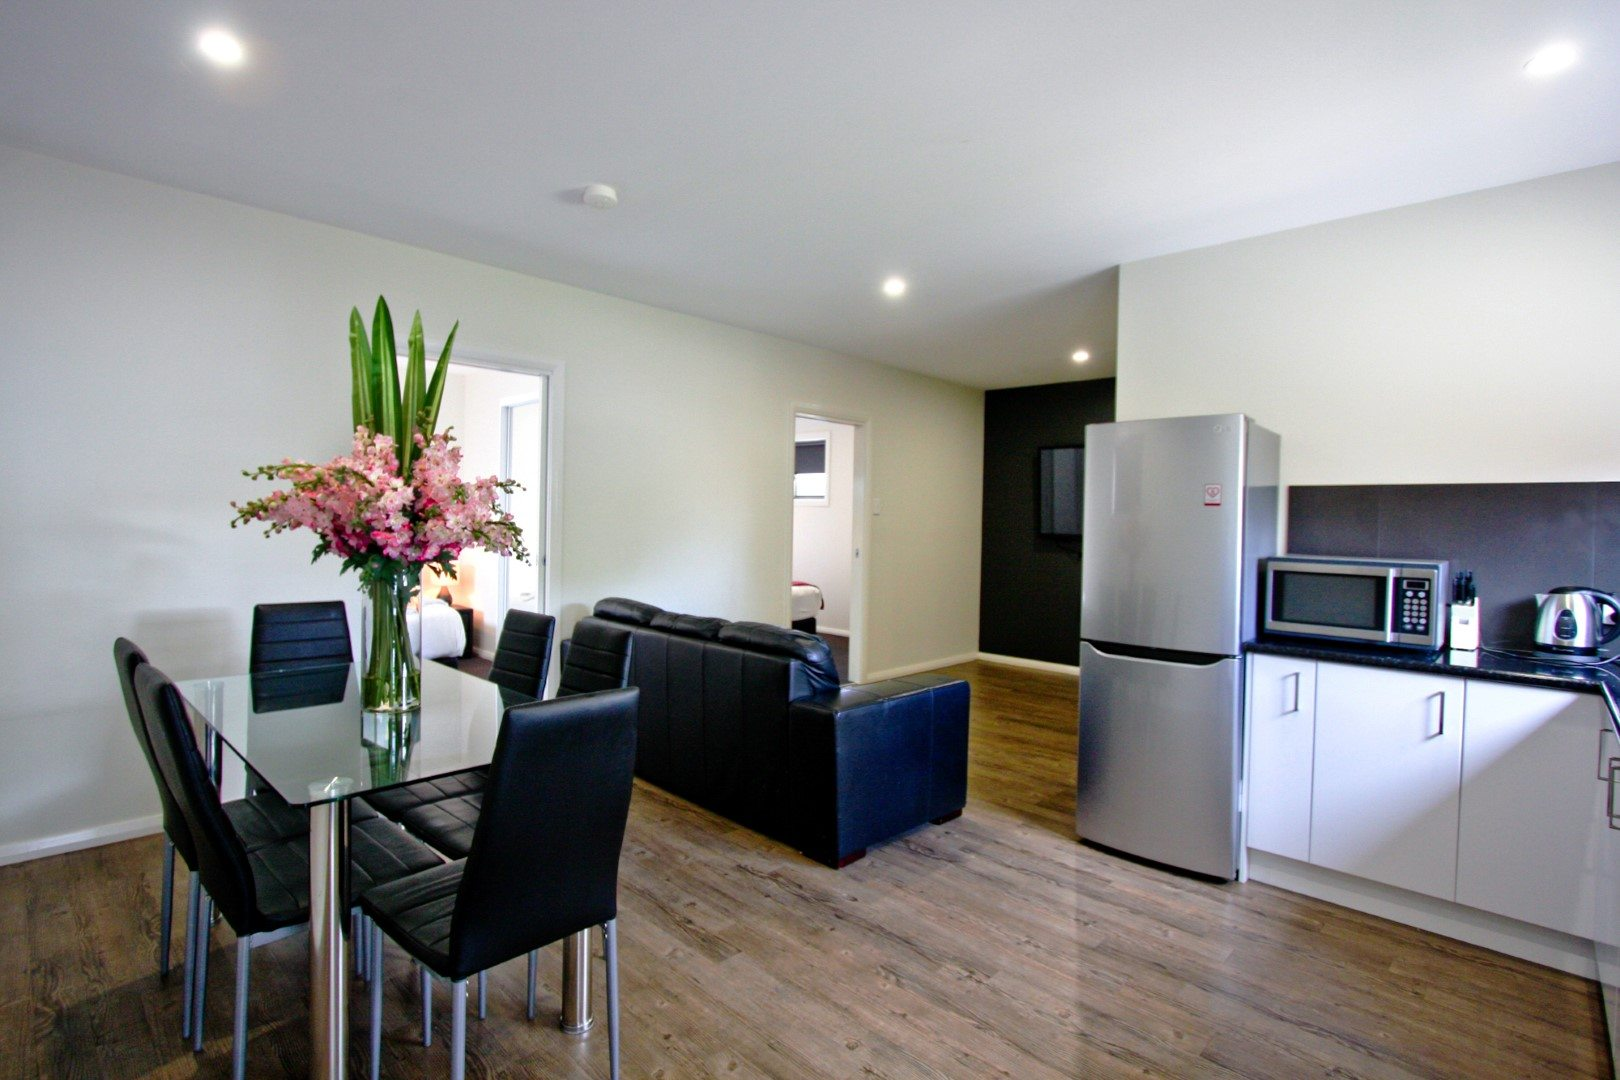 Jesmond Executive Villas - https://www.newcastleapartments.com.au/wp-content/uploads/2019/01/home-style-6.jpg